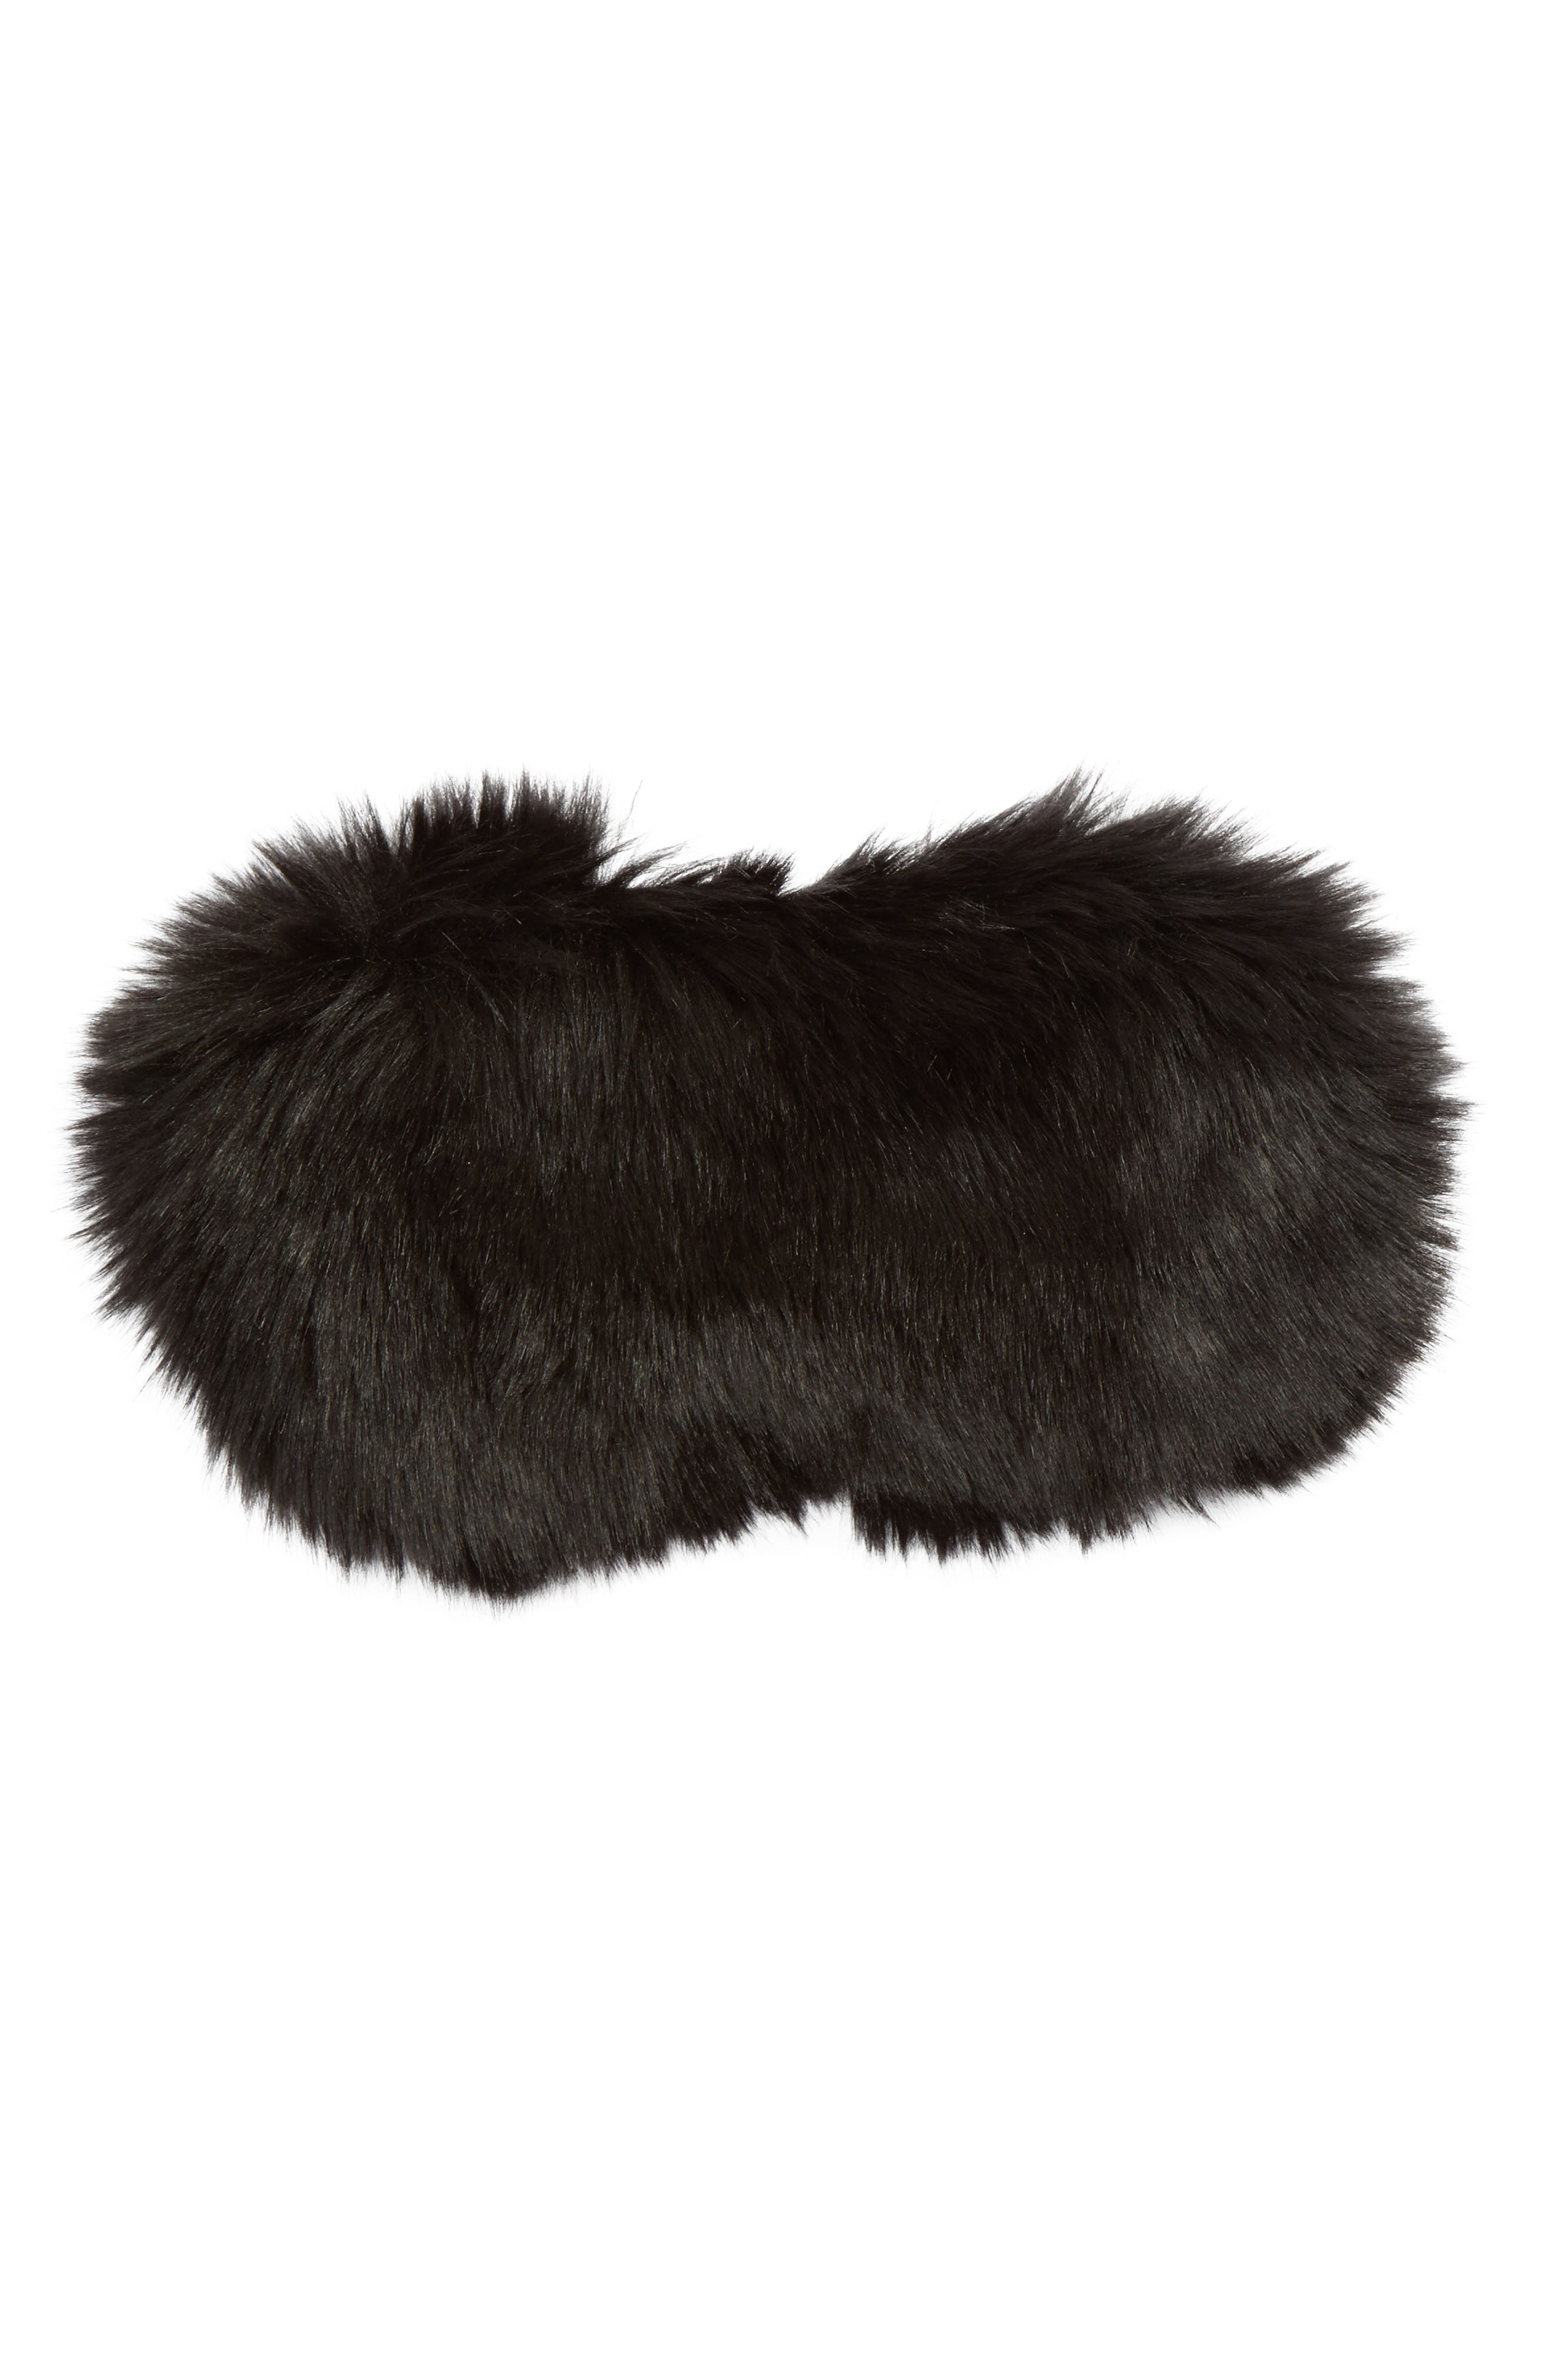 Nordstrom Faux Fur Eye Mask,                             Main thumbnail 1, color,                             001